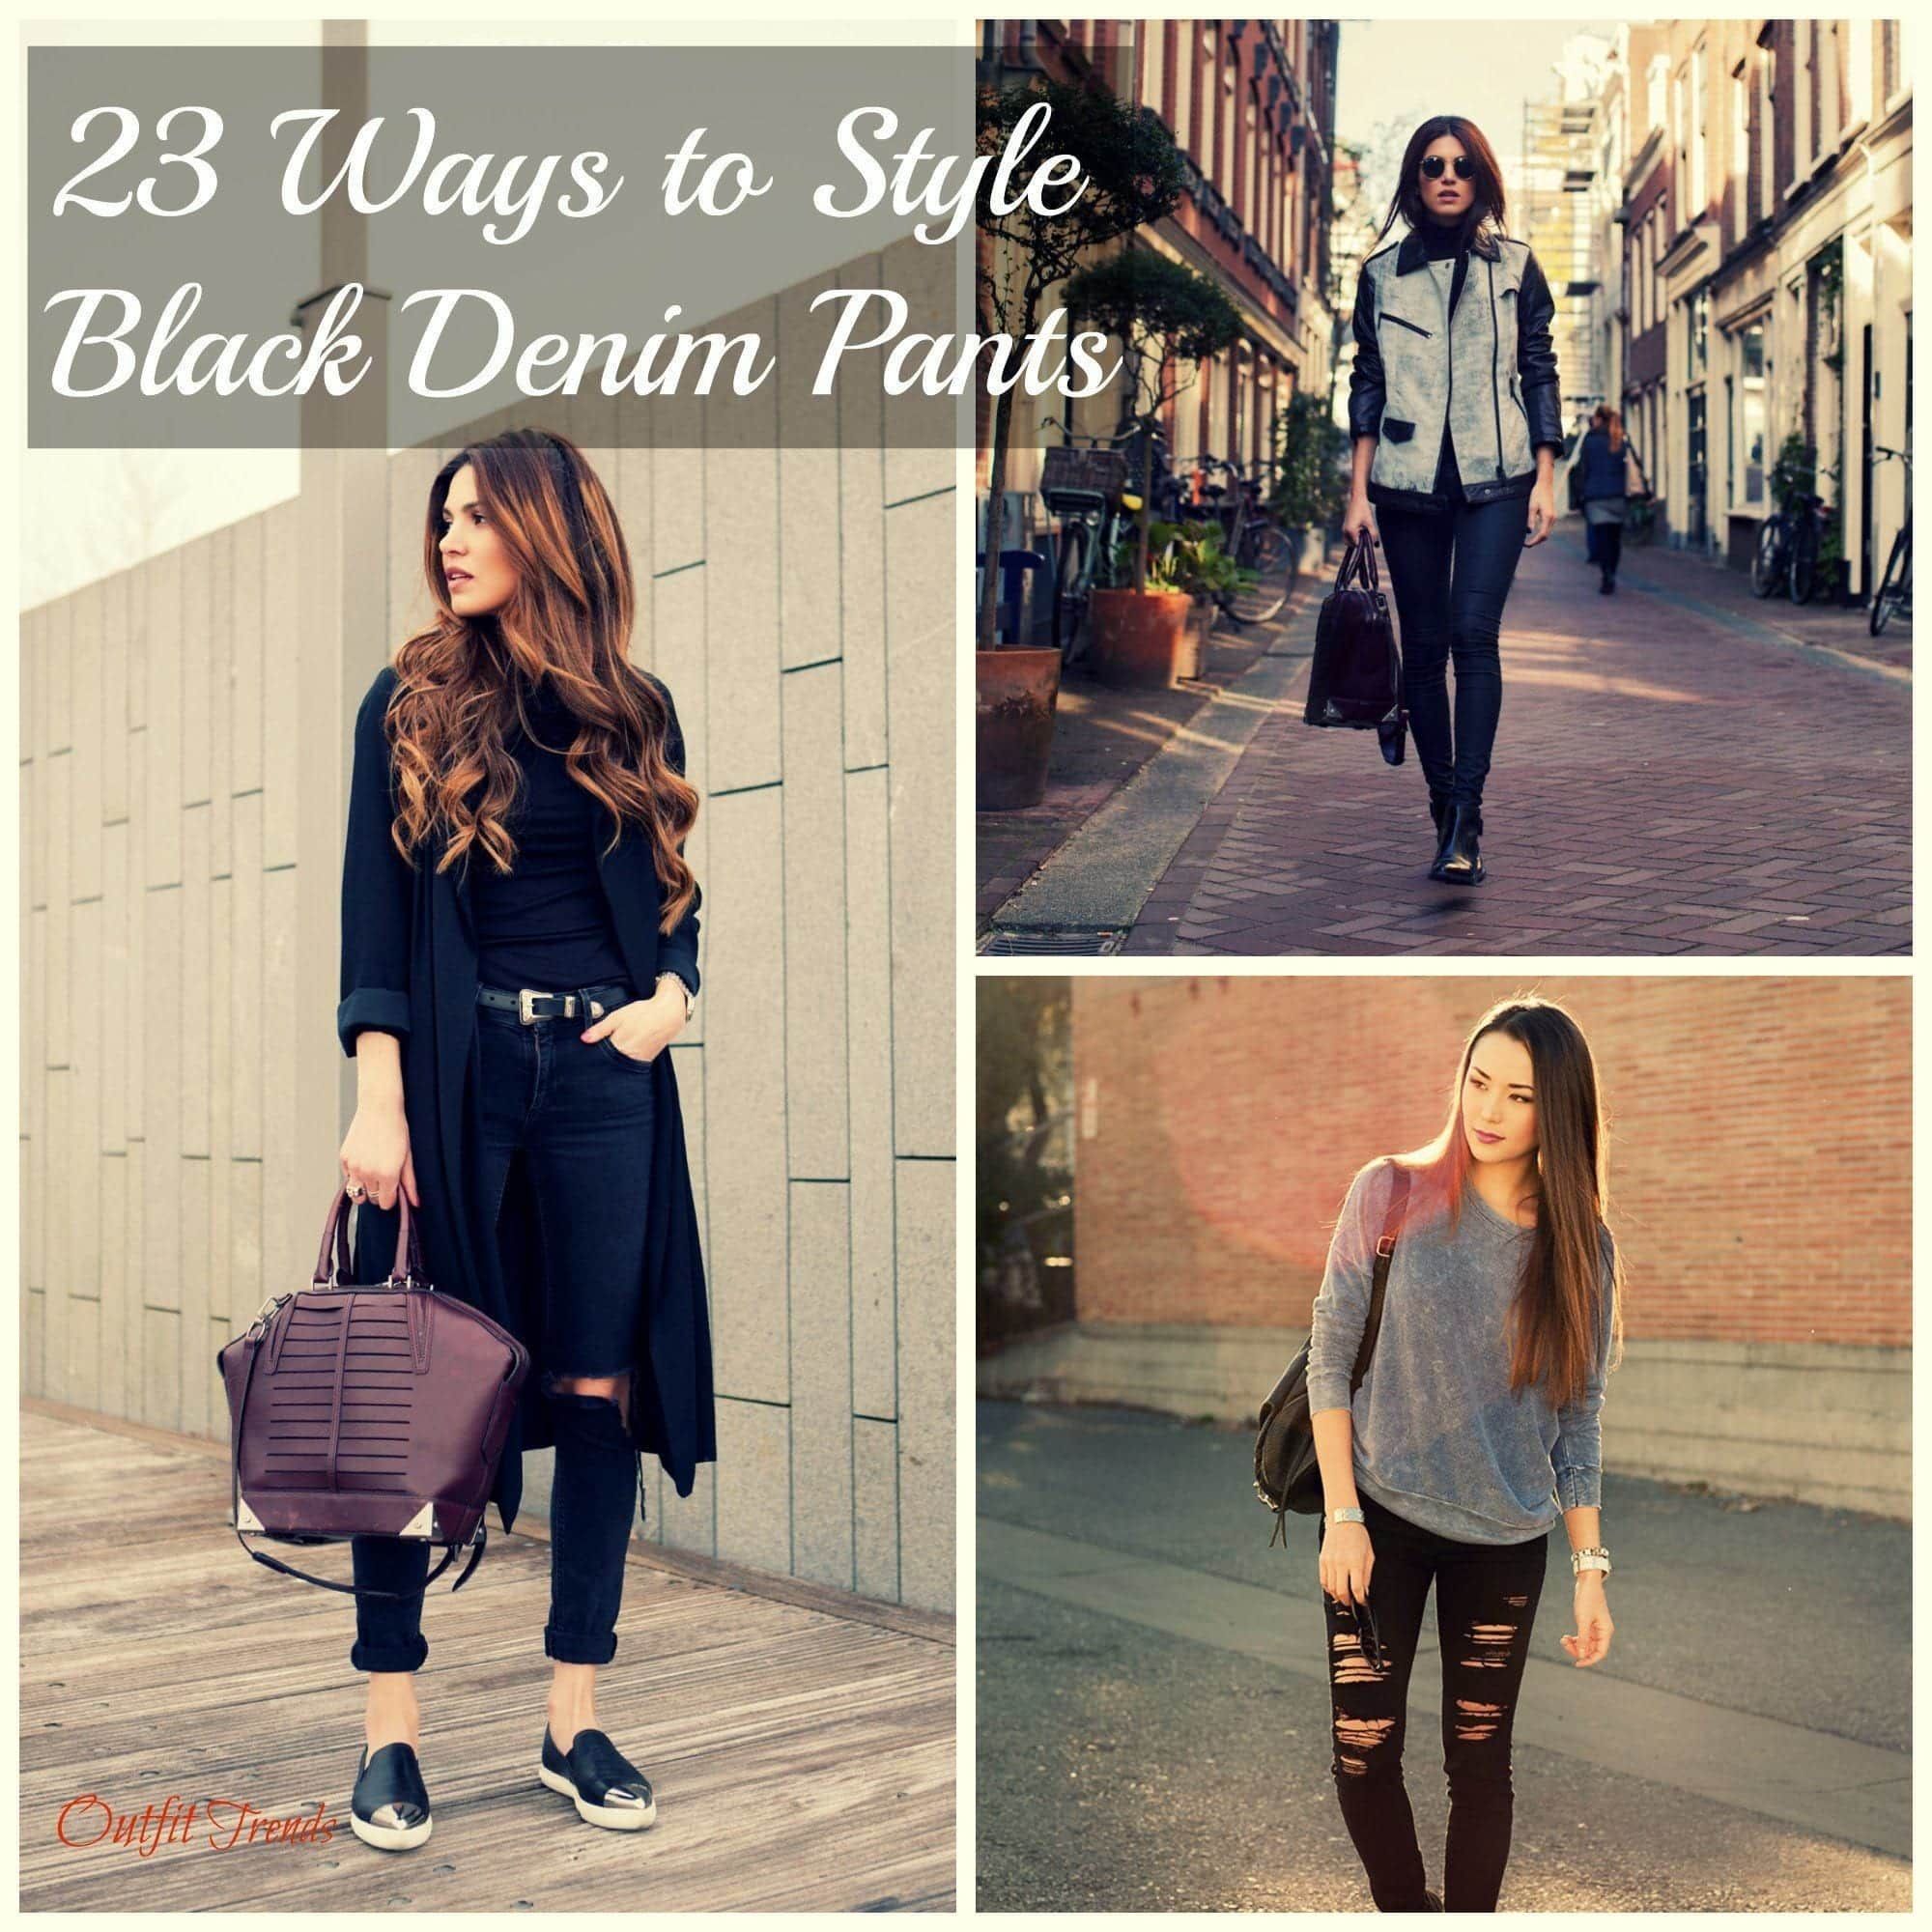 23 Ways to Style Black Denim